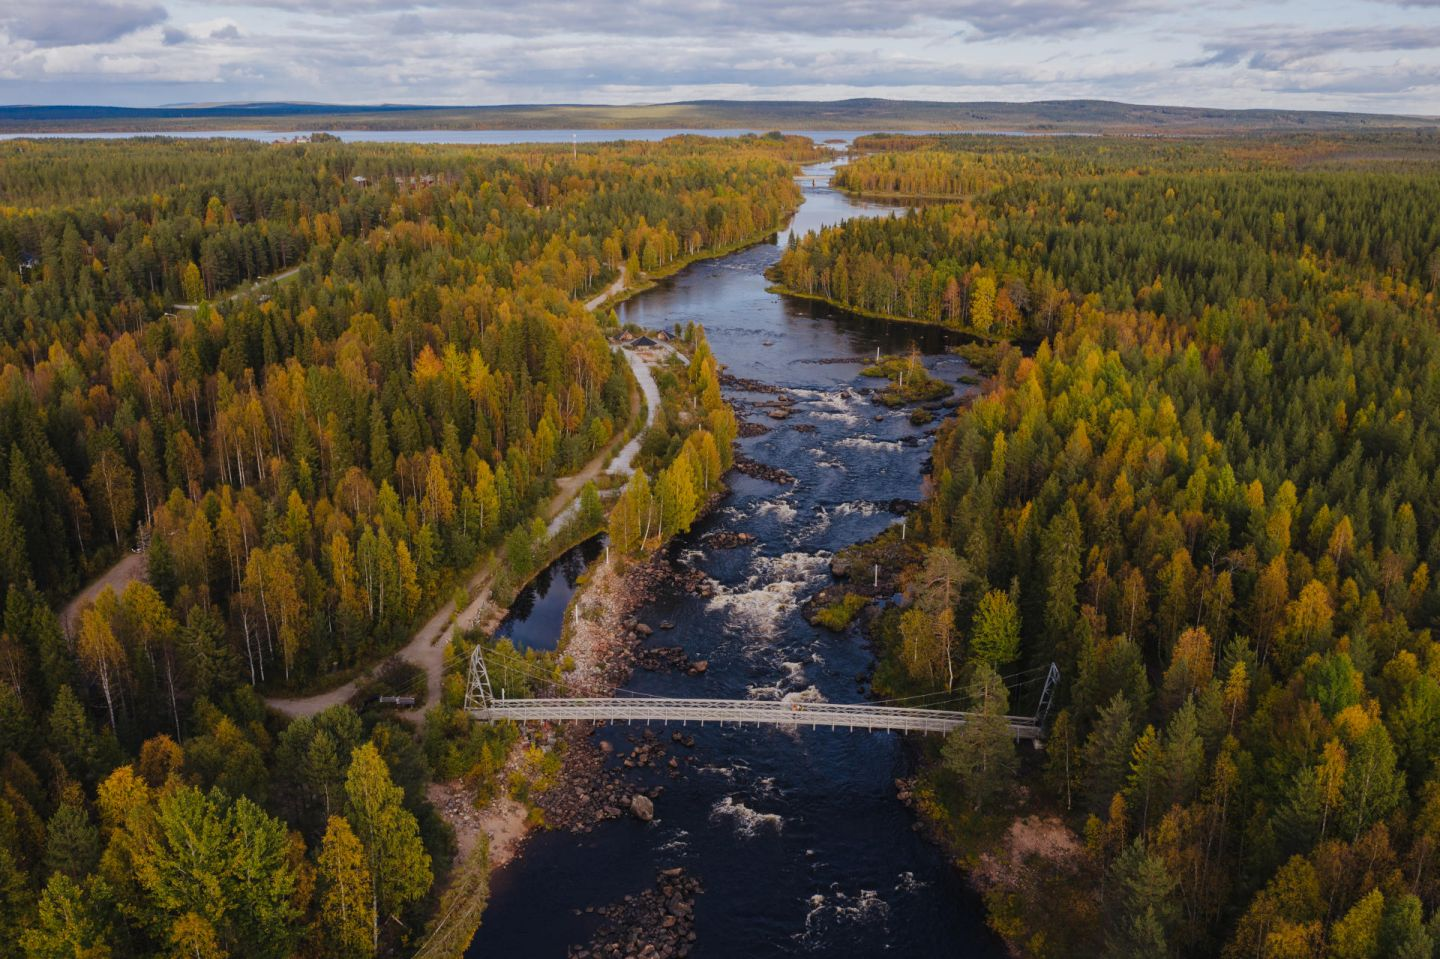 An autumn day in Lapland, Europe's last wilderness